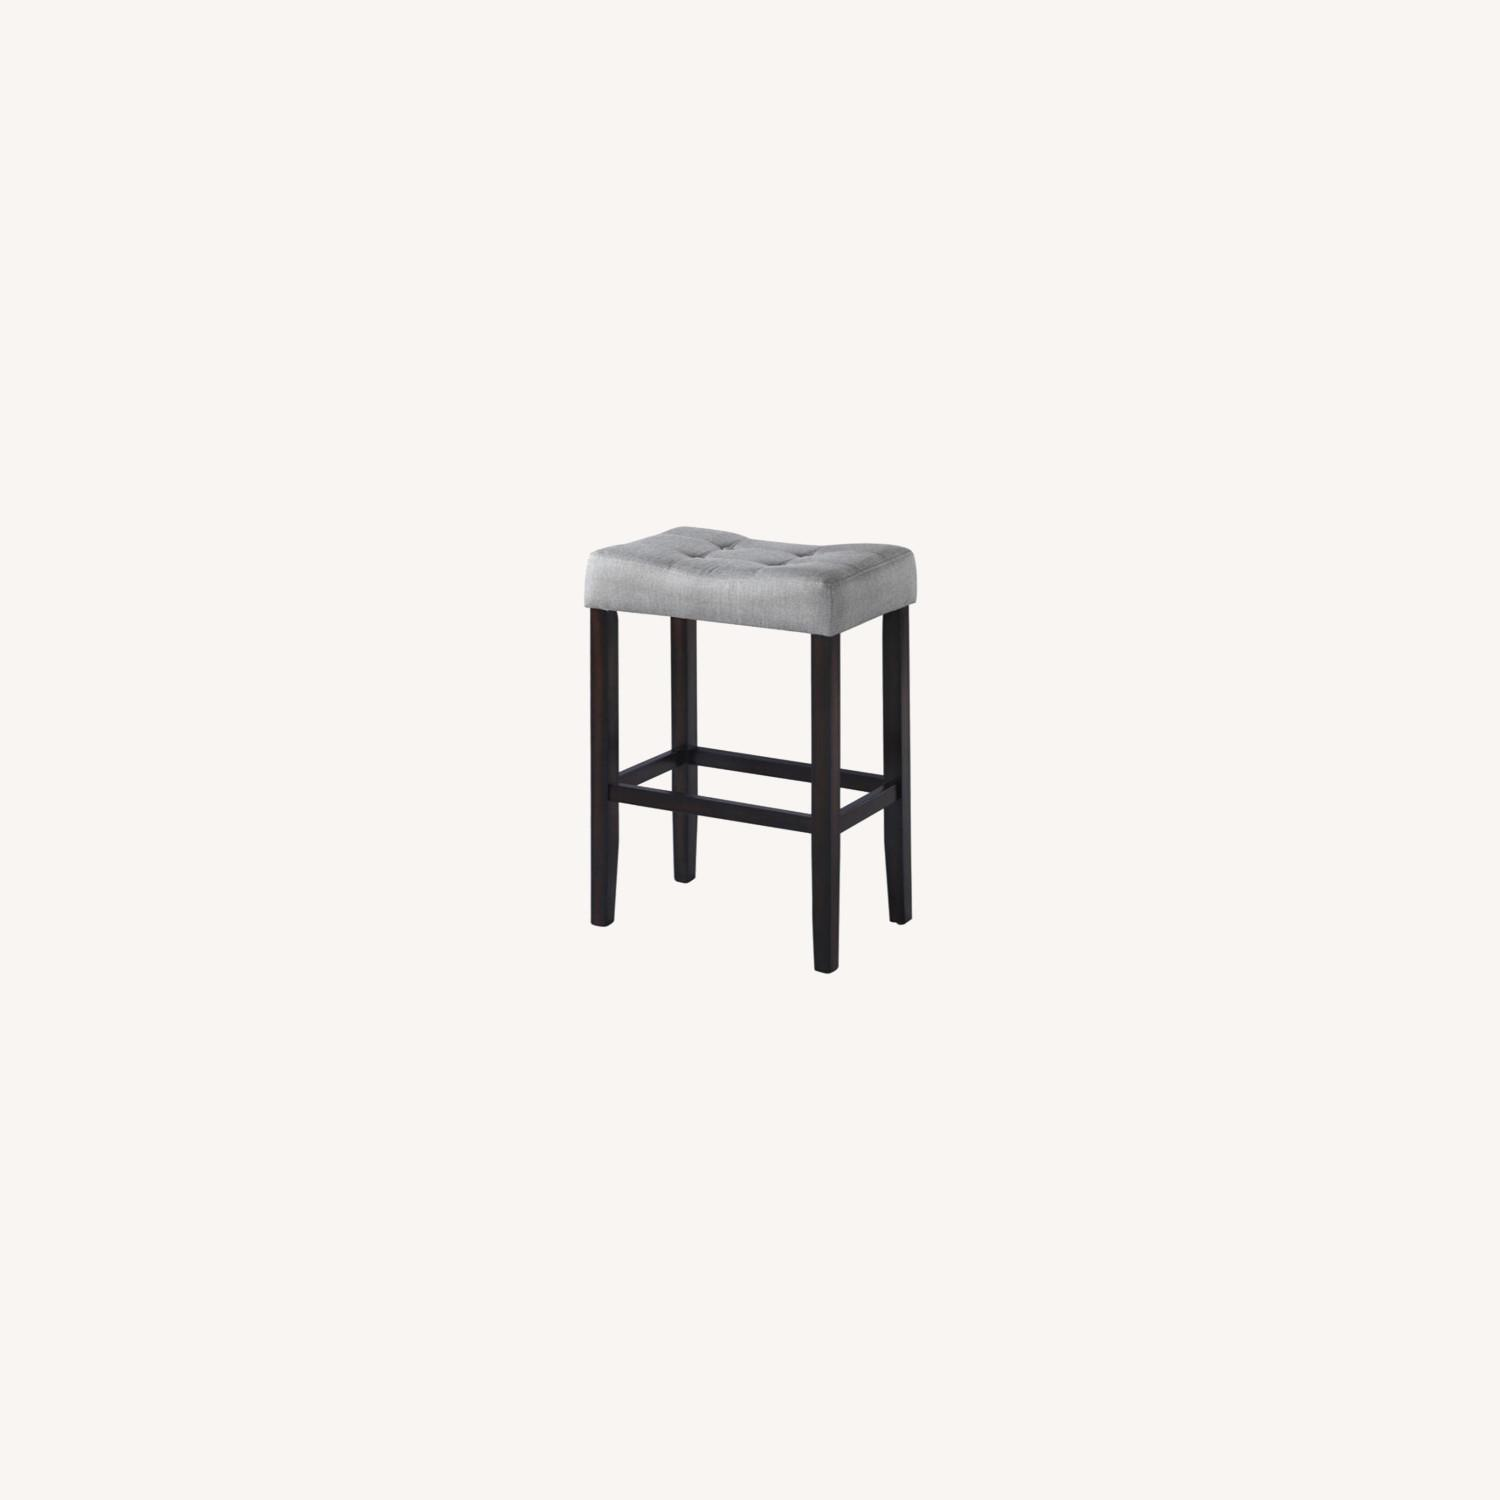 Bar Stool In Grey Fabric W/ Tufted Seating - image-4